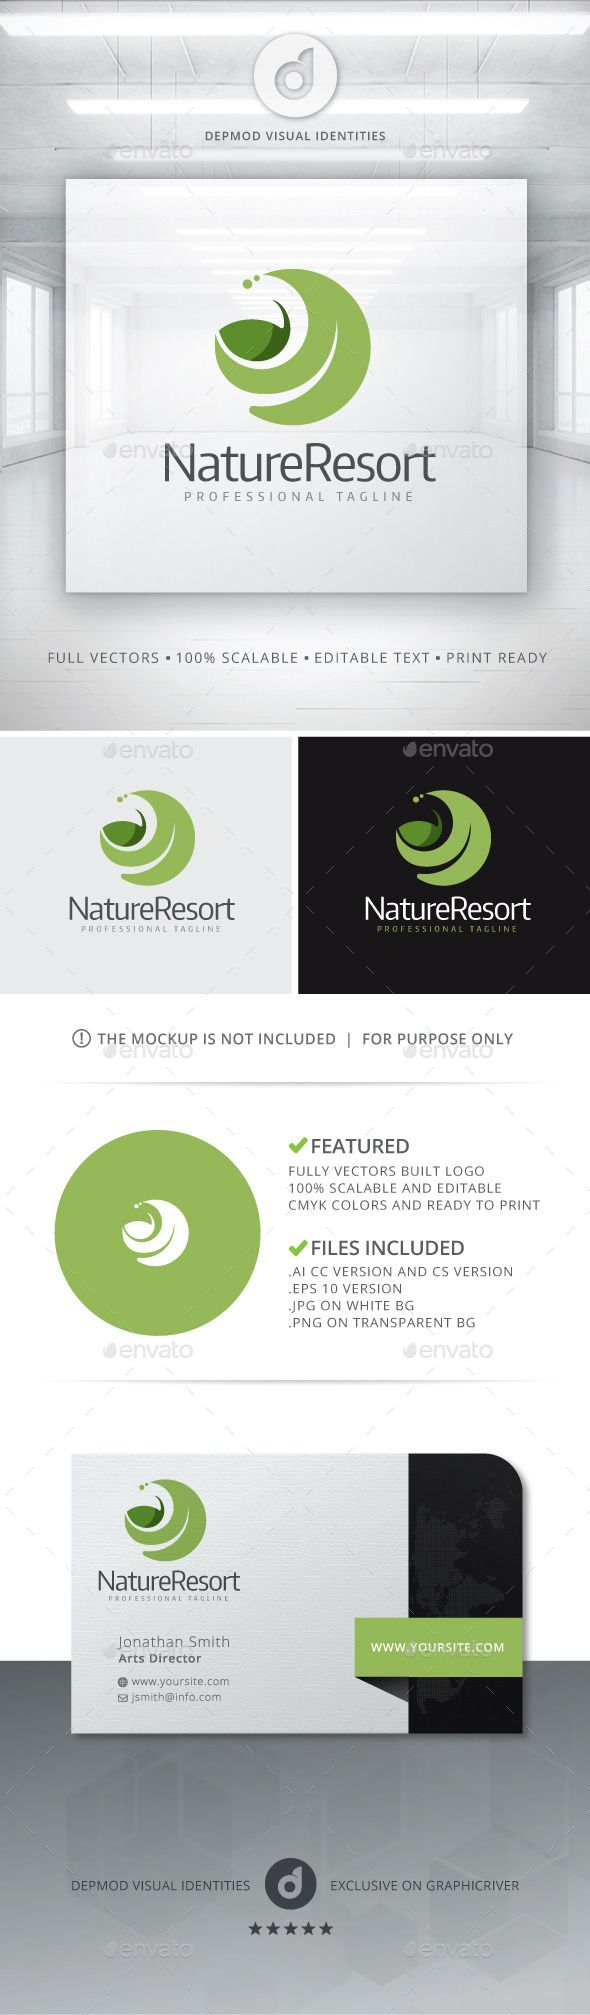 Nature Resort - Logo Design Template Vector #logotype Download it here: http://graphicriver.net/item/nature-resort-logo/10916790?s_rank=1083?ref=nexion